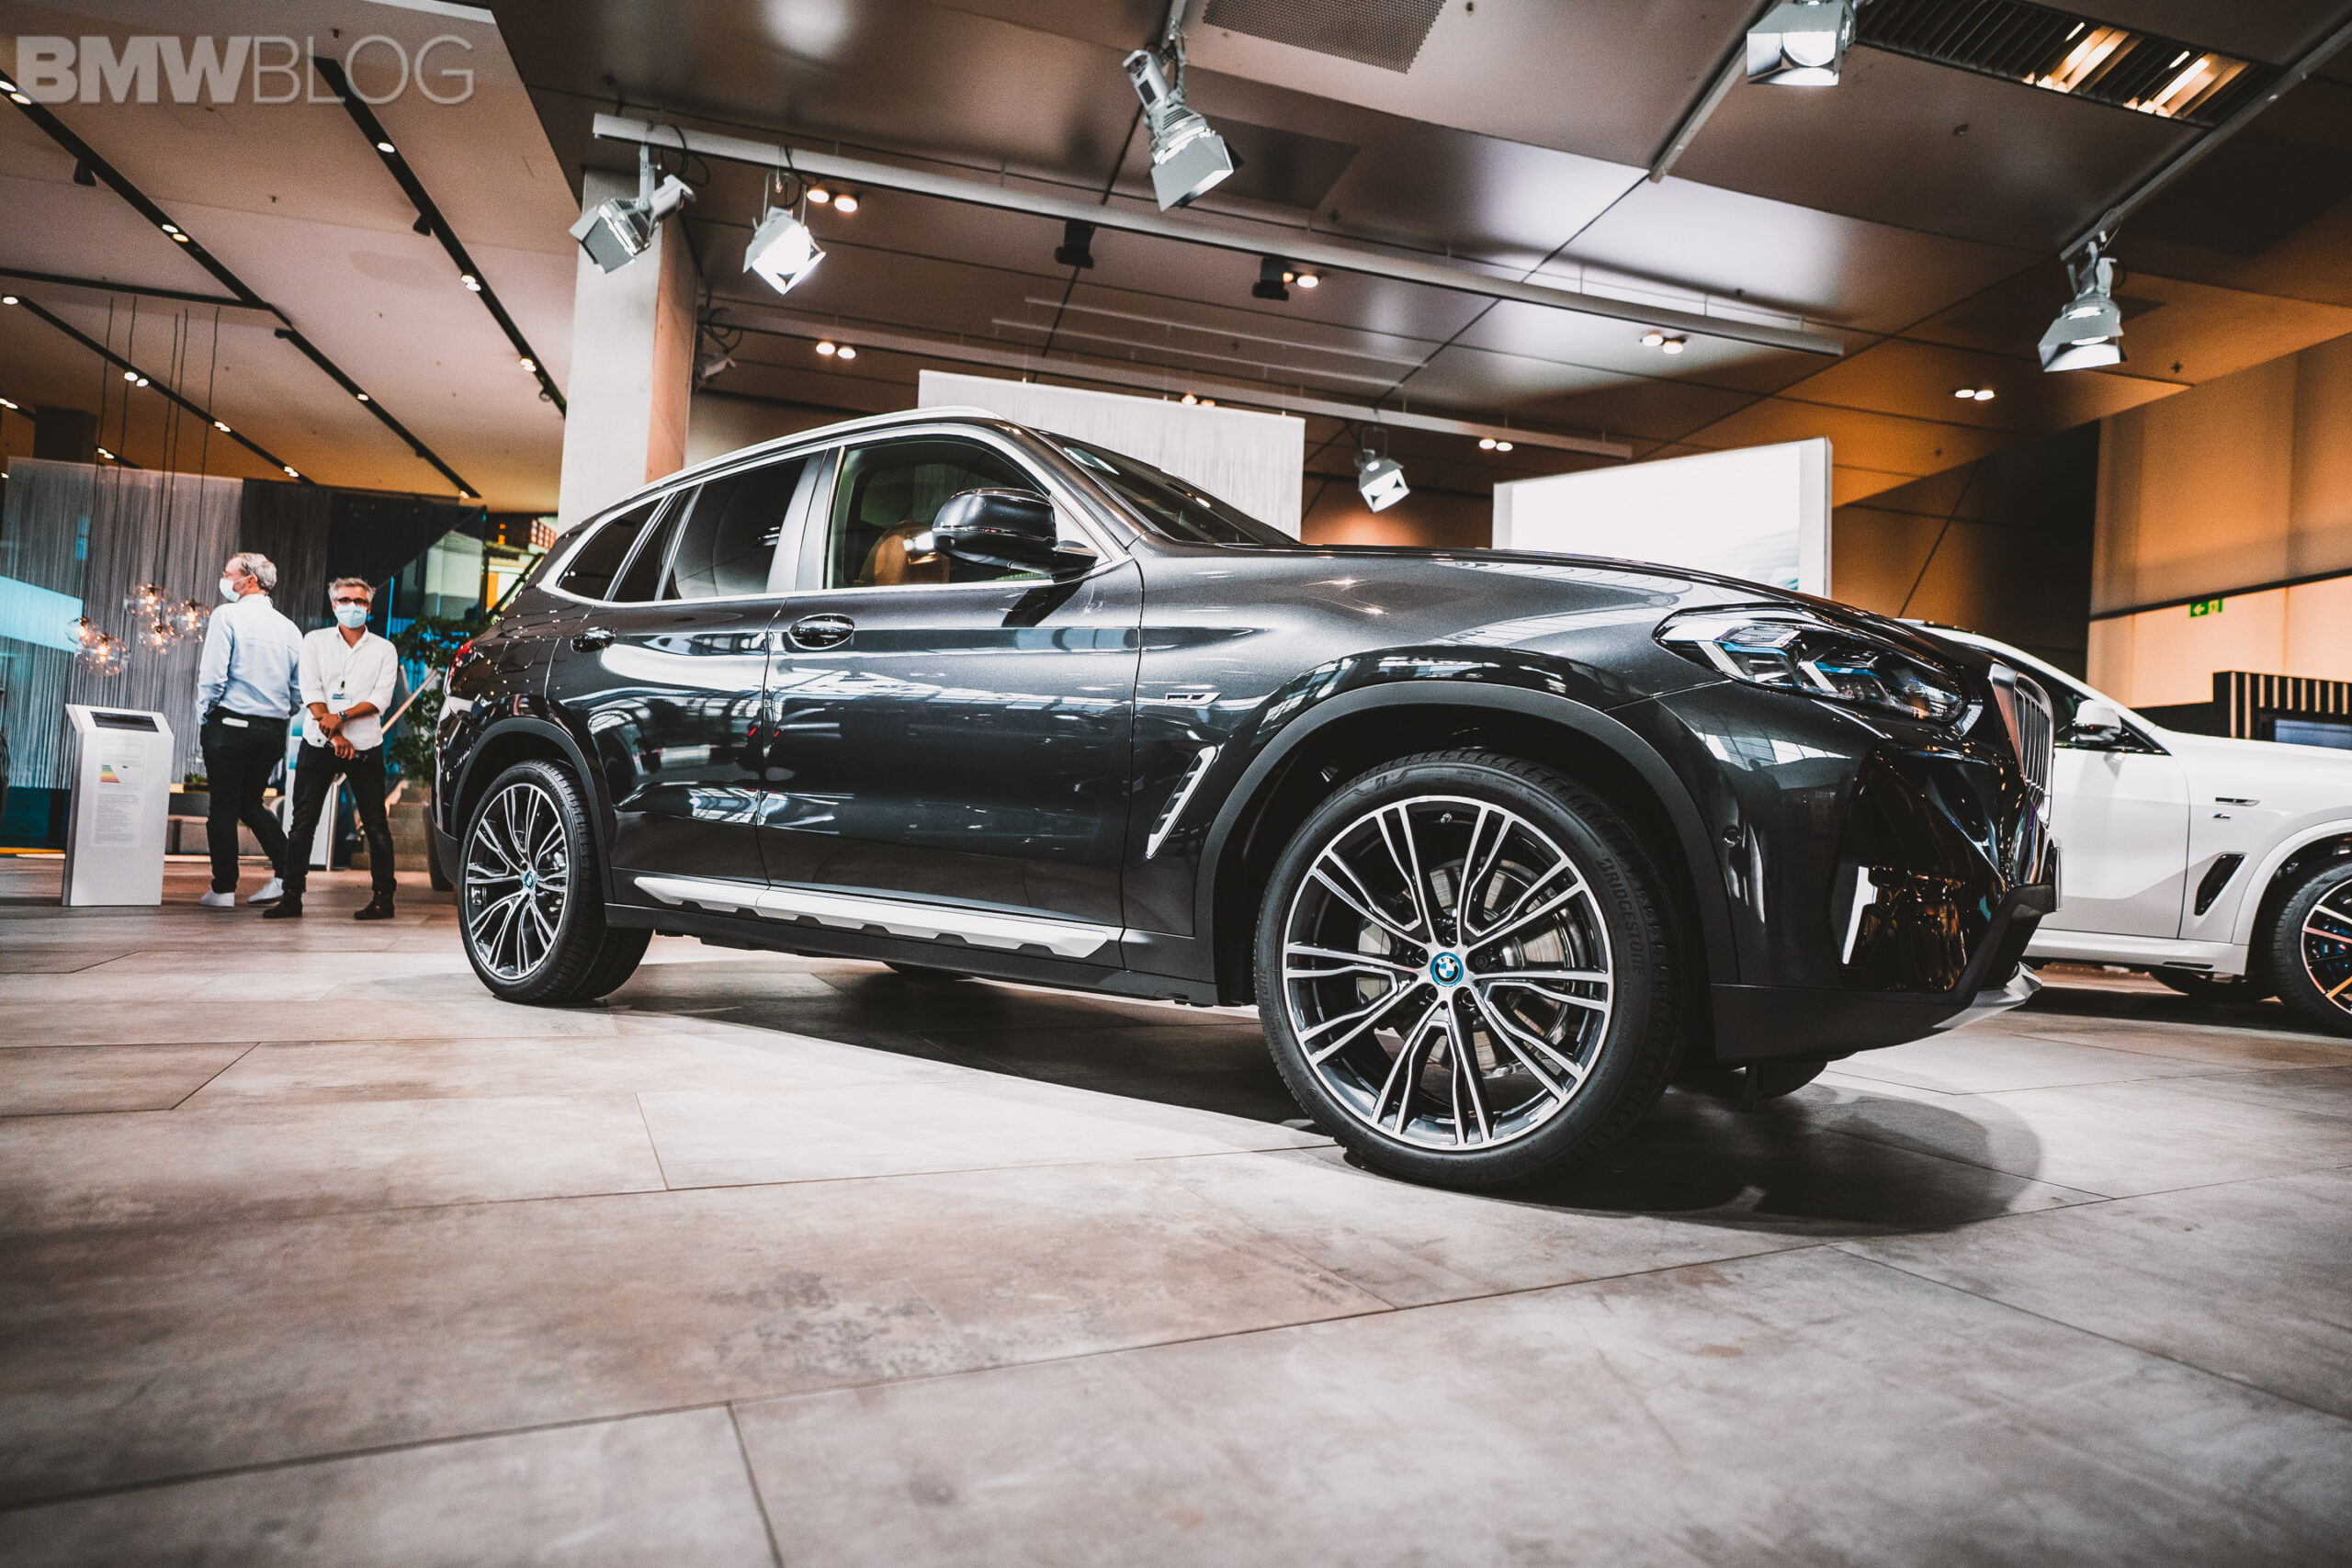 2021 bmw x3 facelift images 2 scaled